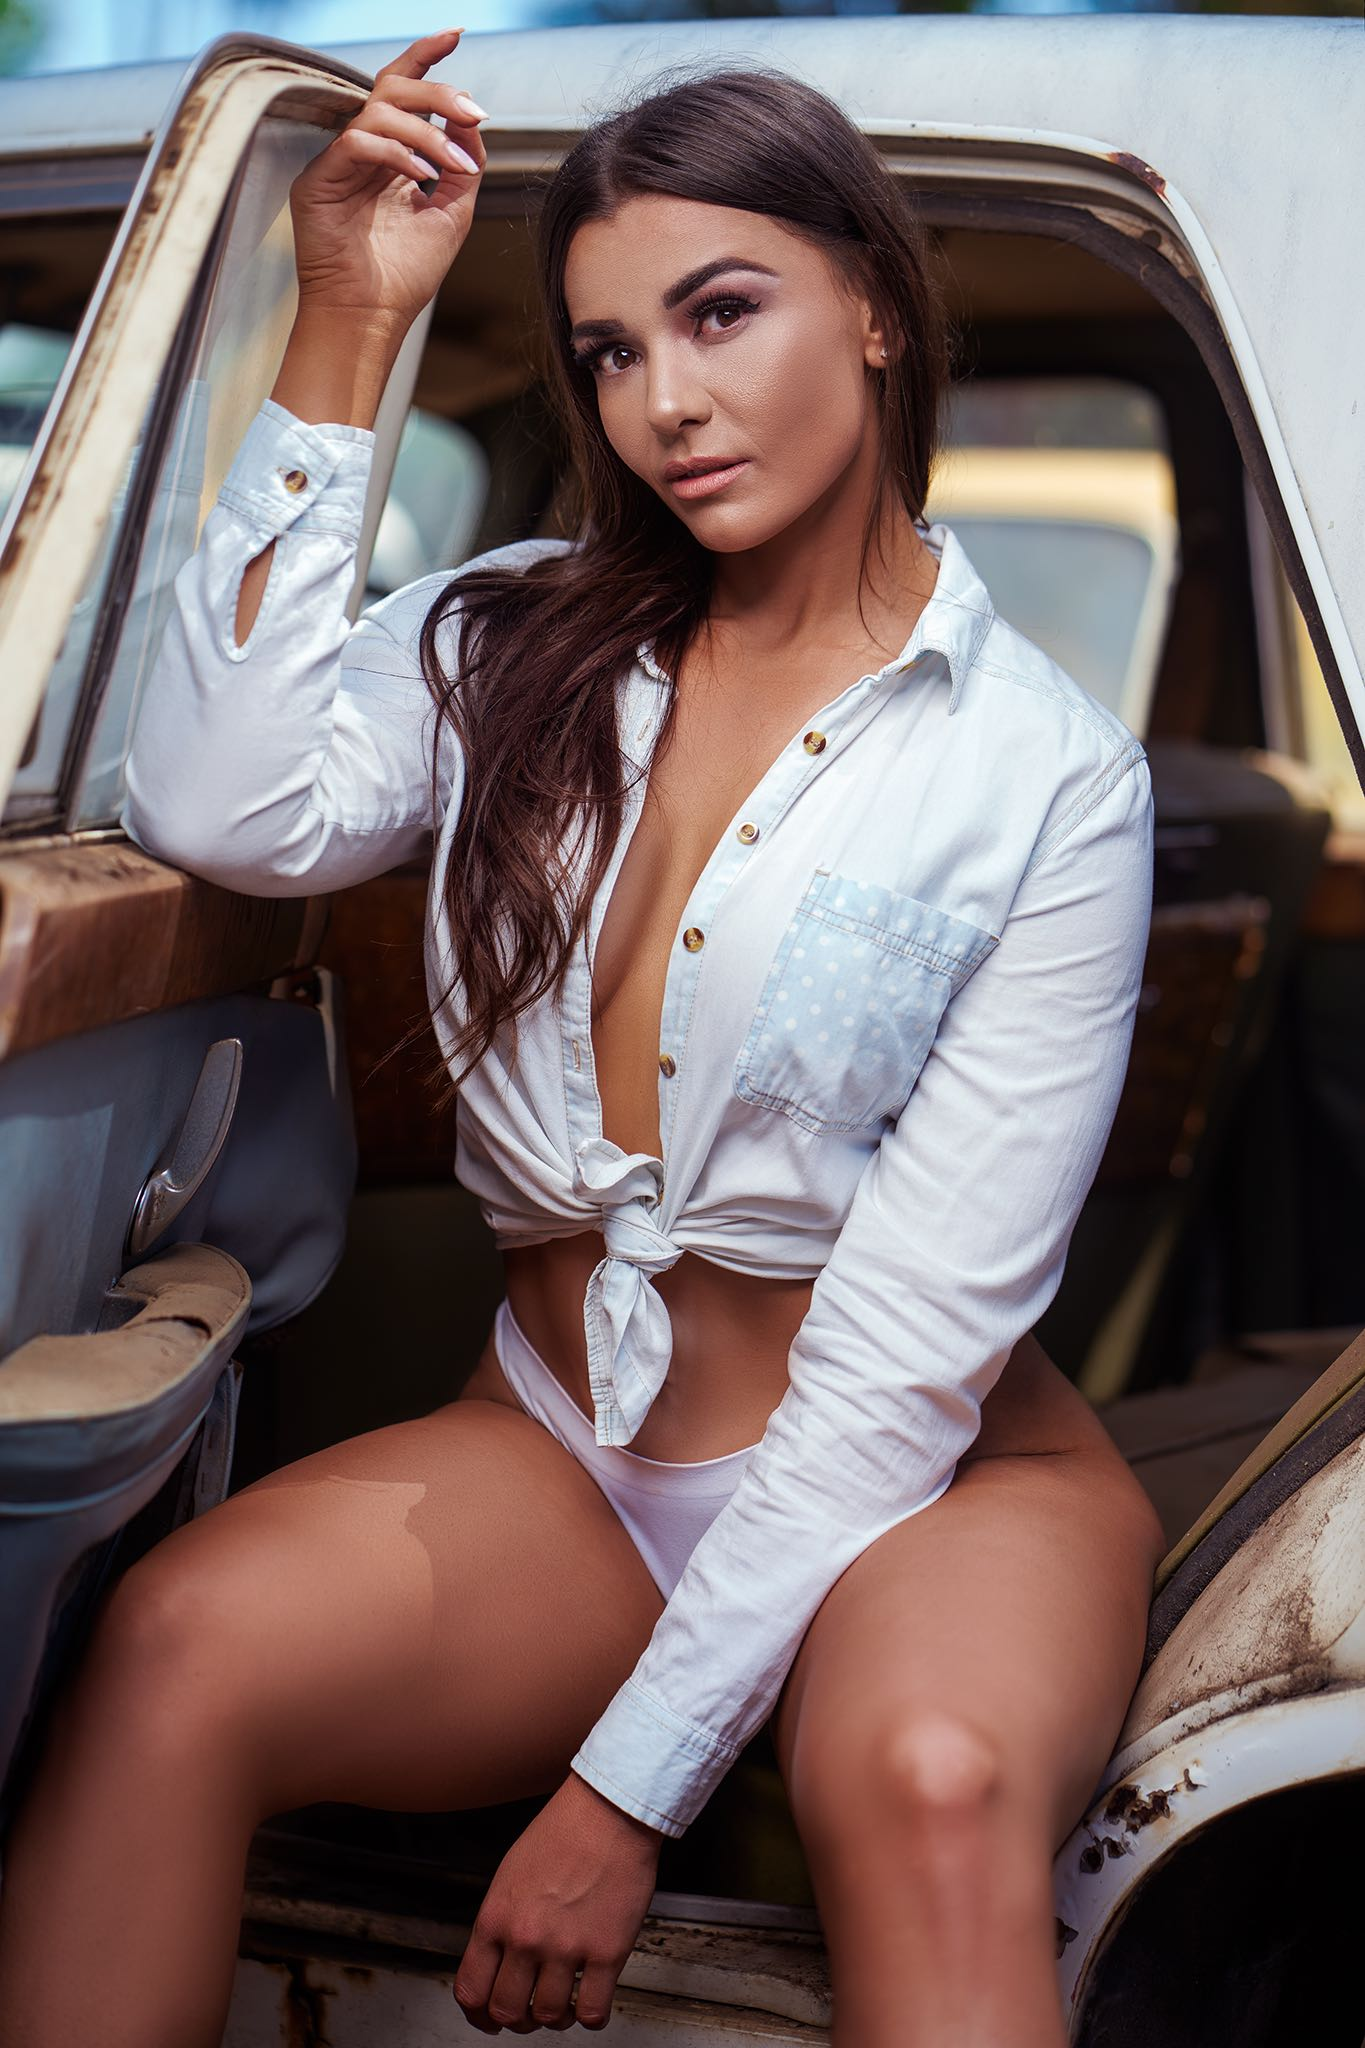 Our SA Girls feature with Yvette Ferreira